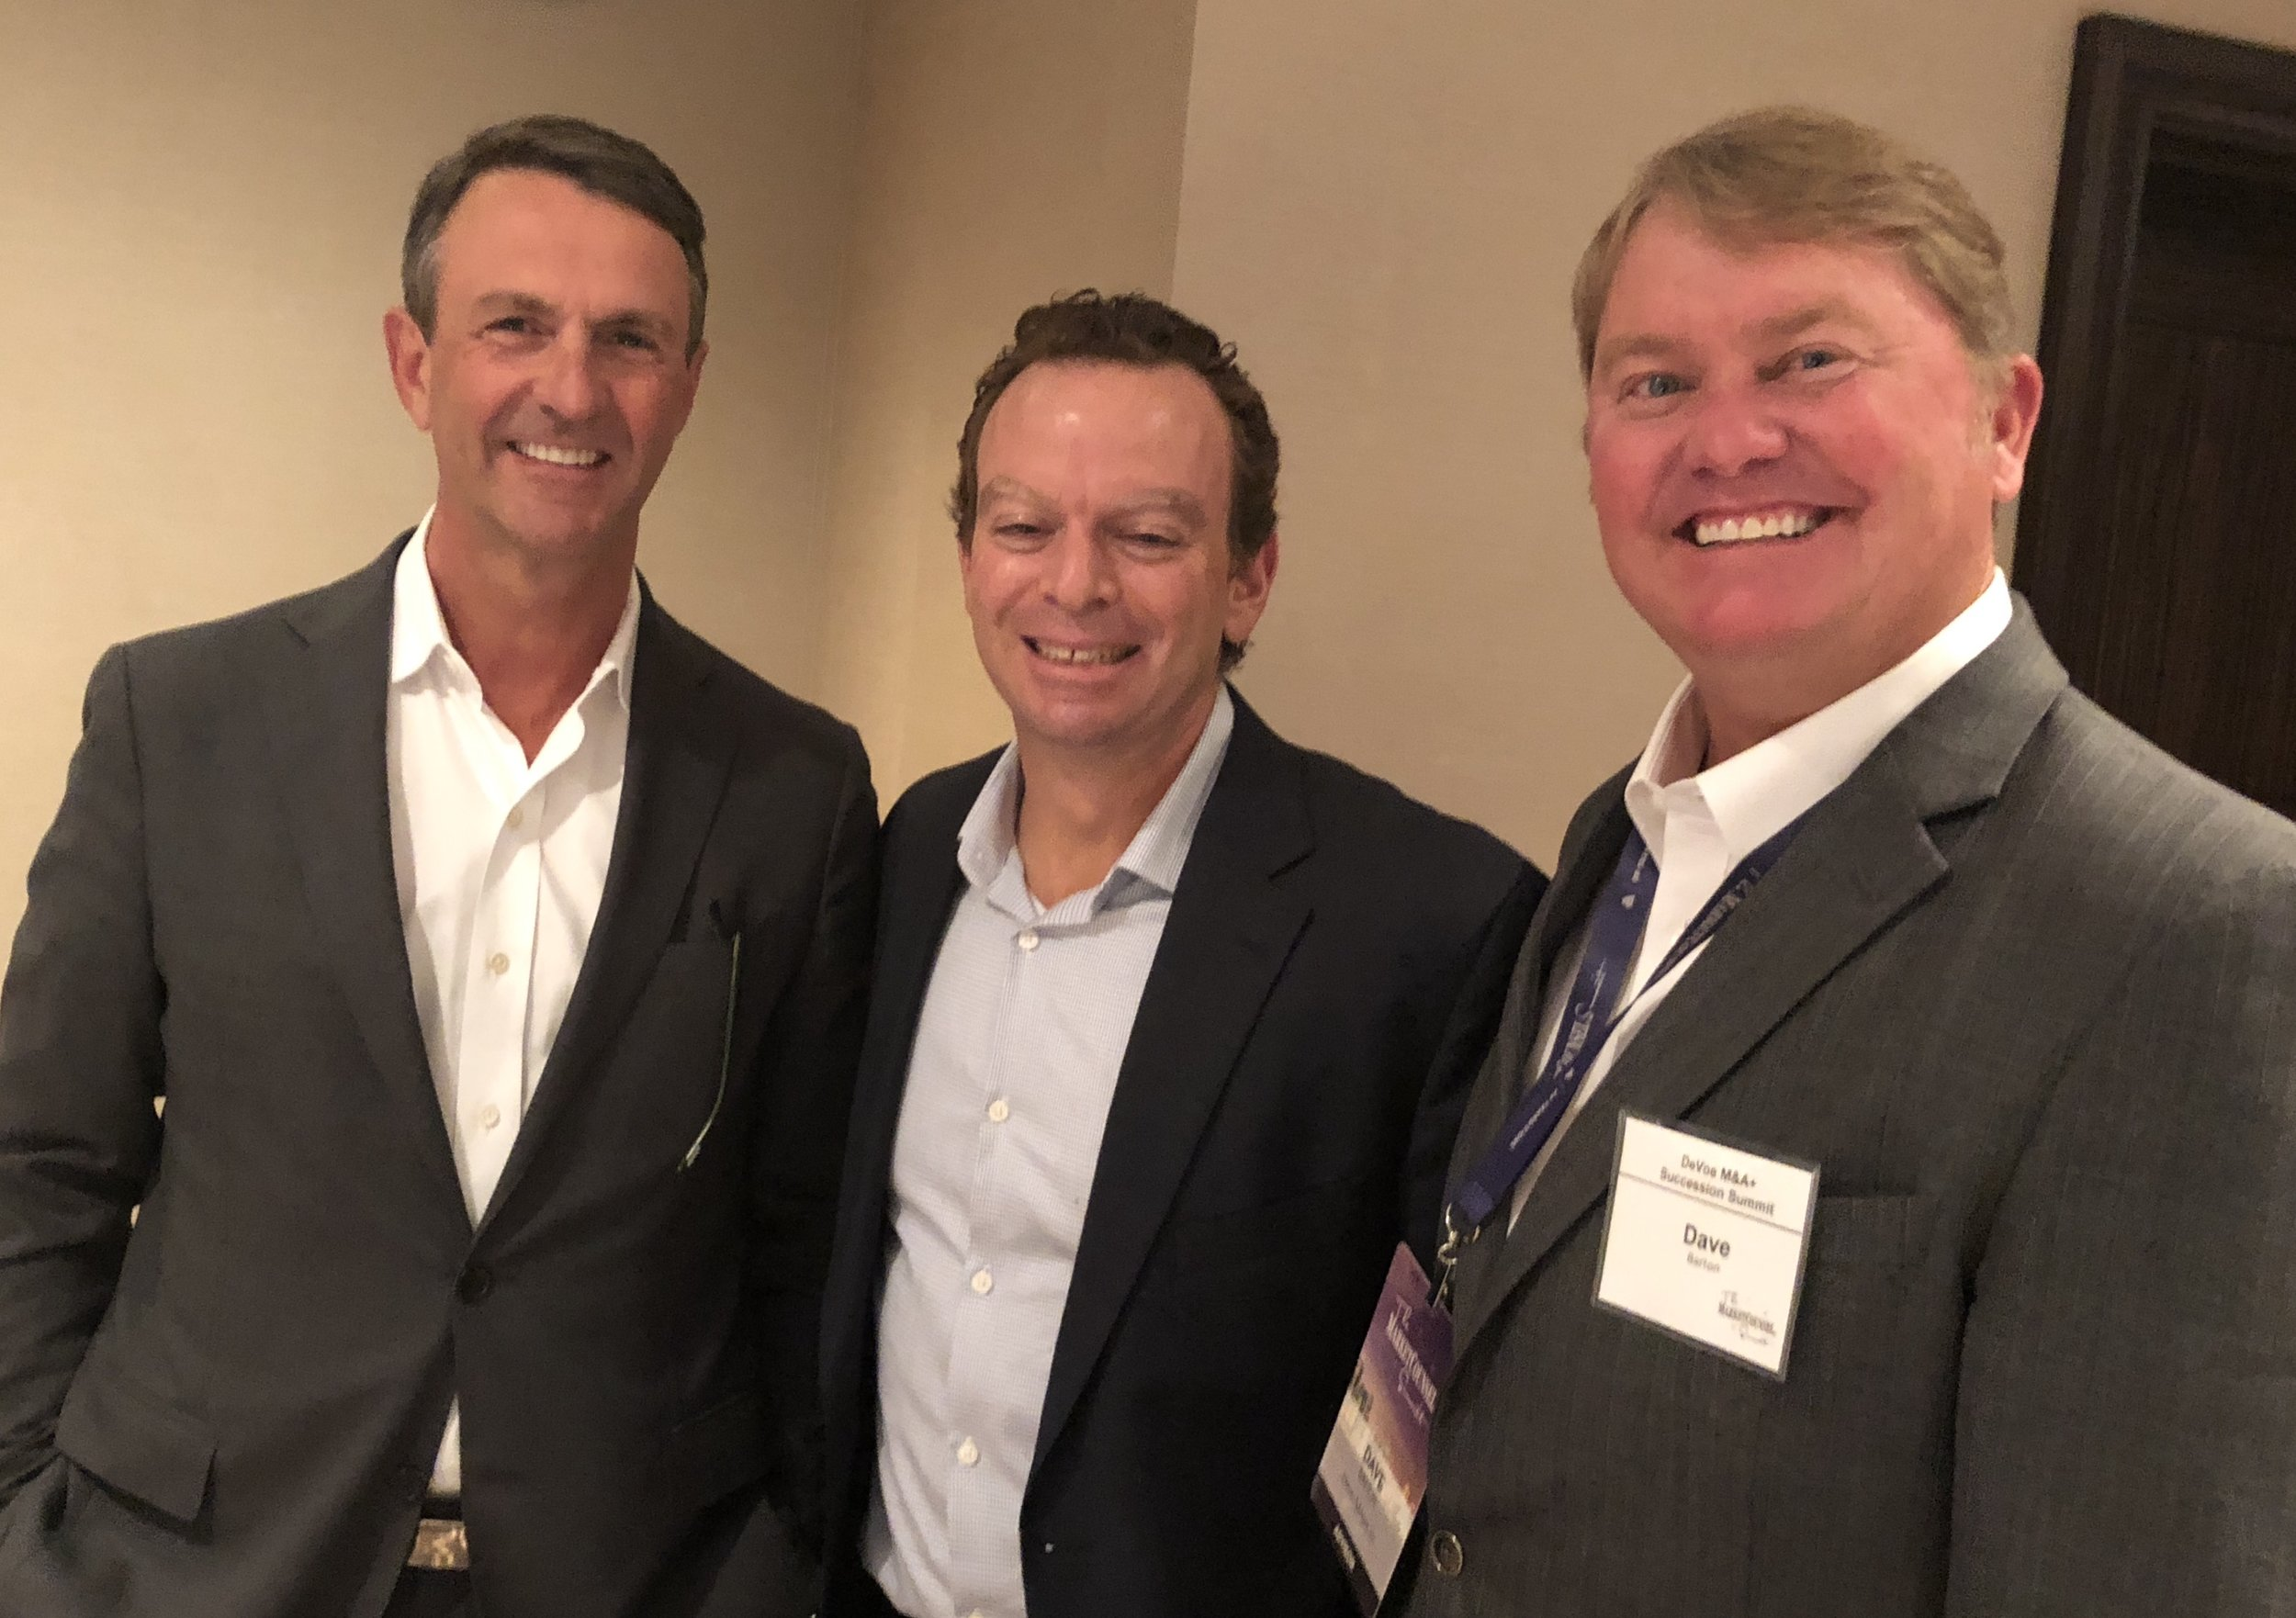 Rush Benton - CAPTRUST, Richard Feldman - Investor Solutions, Dave Barton - Mercer